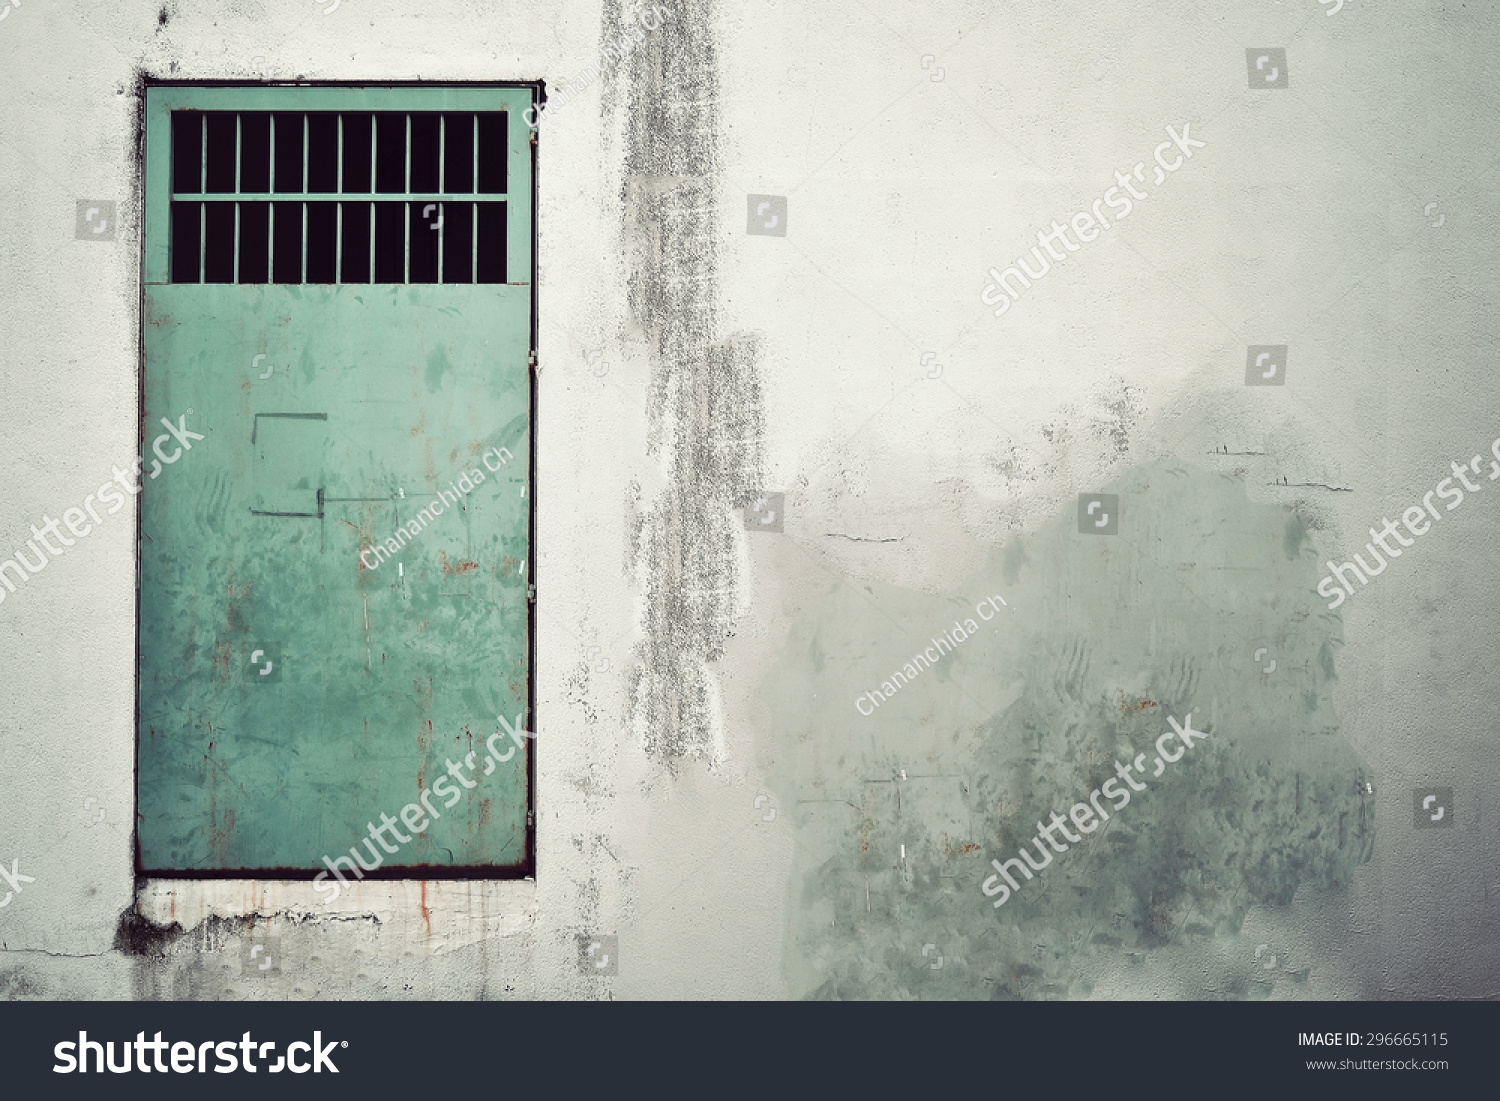 Old Metal Door On Wall Vintage Stock Photo 296665115 - Shutterstock